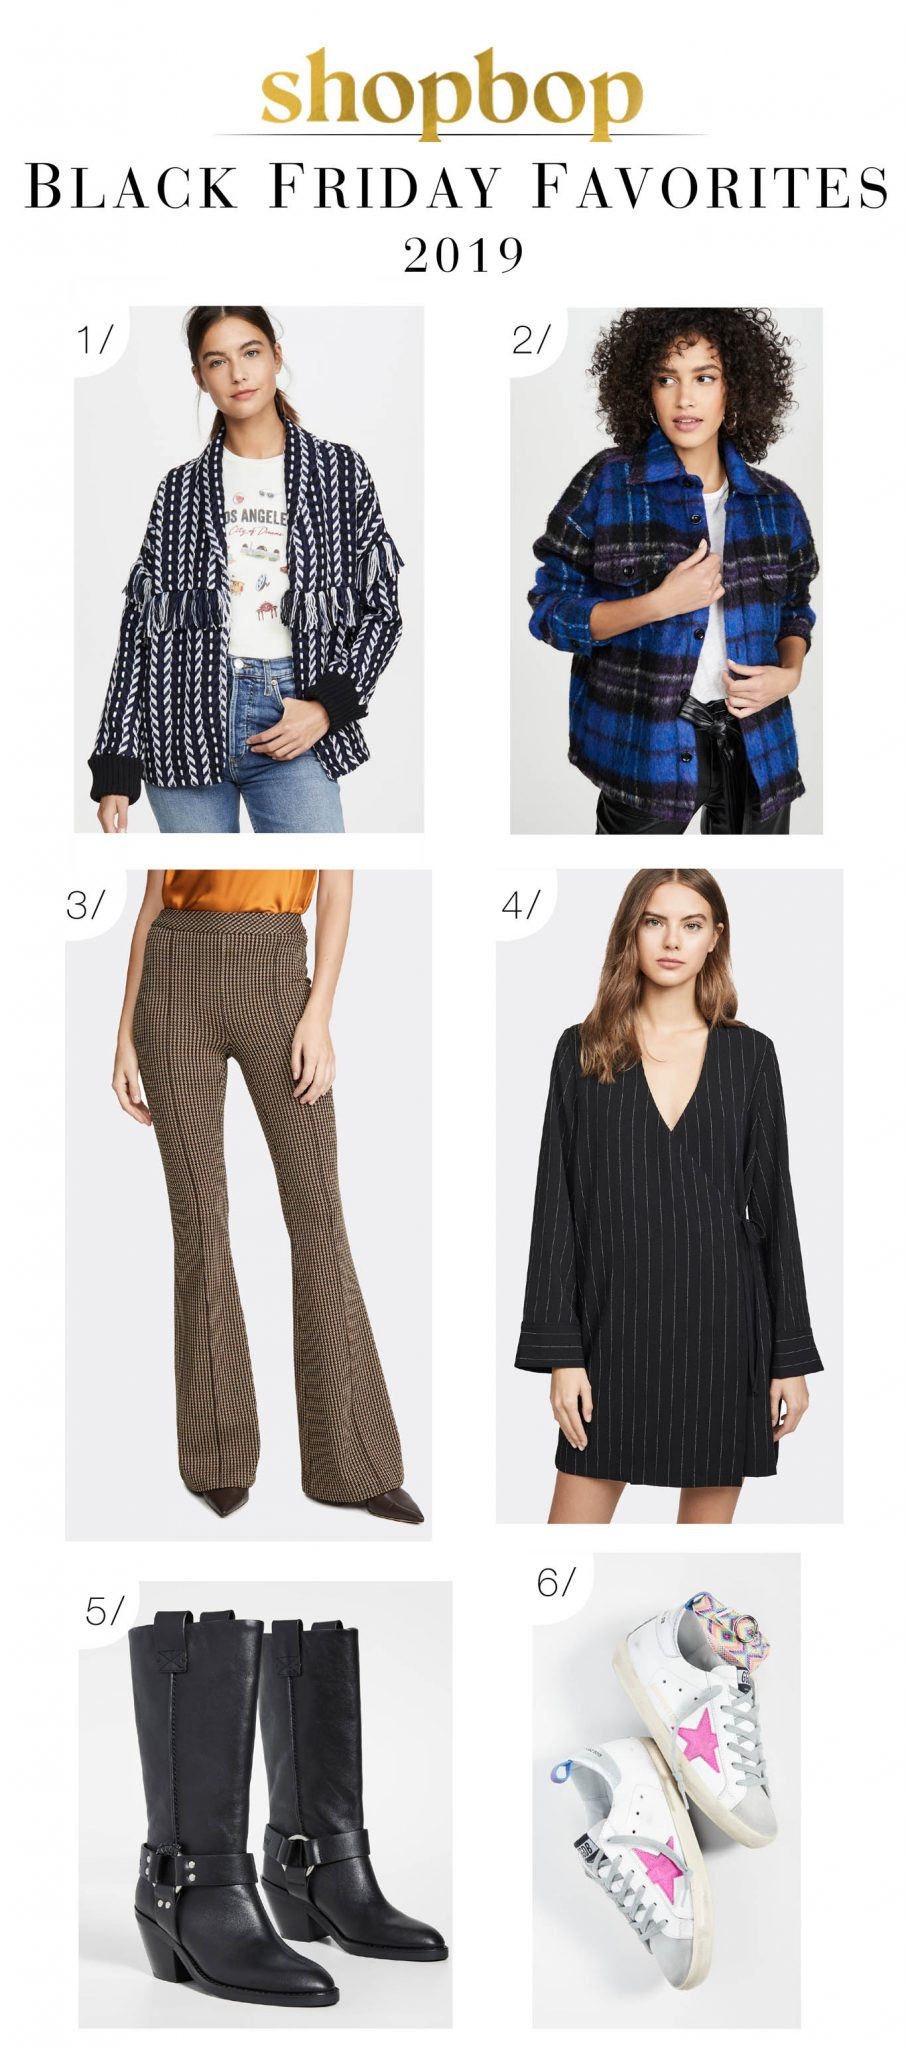 It's Black Friday shopping time & we have 6 investment pieces in our Shopbop cart (Buy More, Save More)...Golden Goose, Anine Bing, GANNI...snap 'em up!